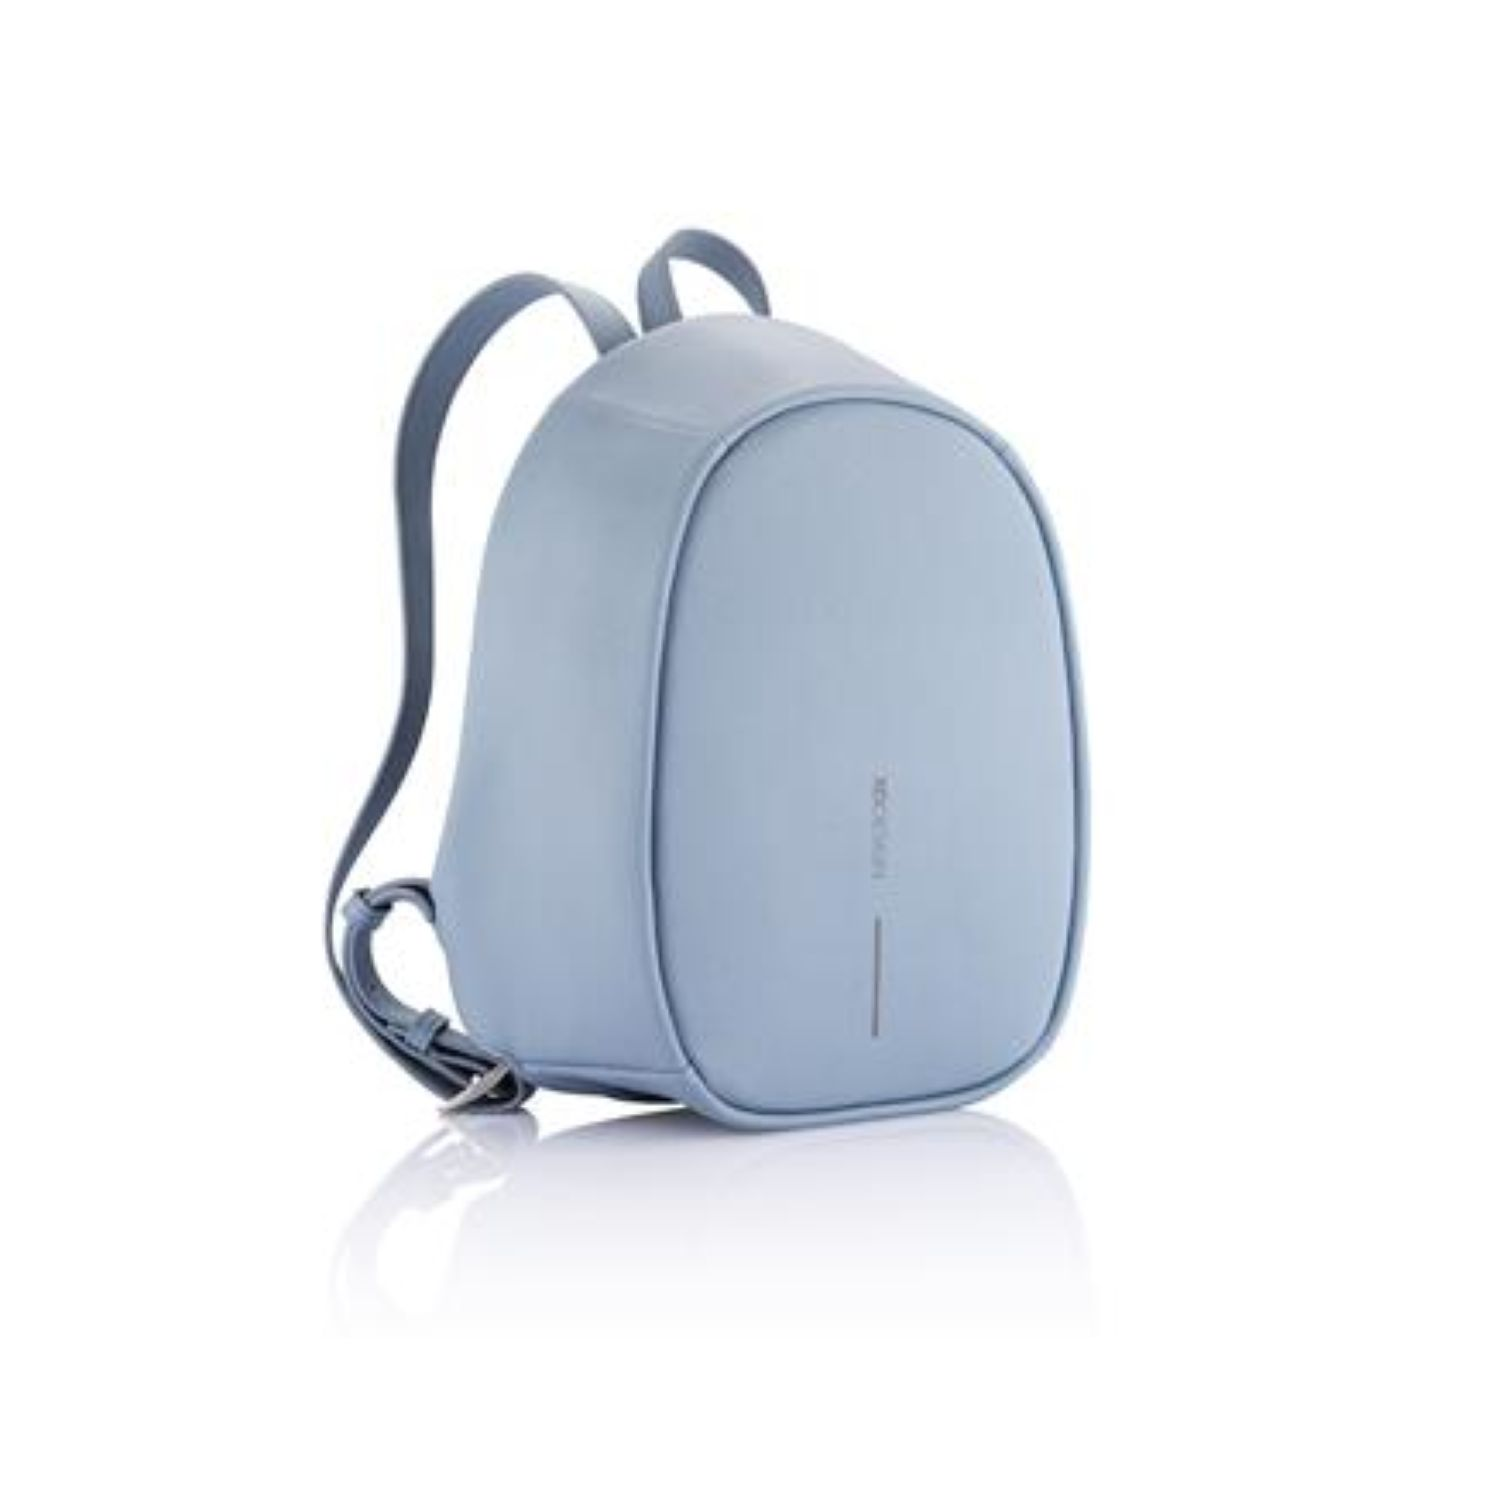 178f86dfca Buy Bobby Elle Anti-Theft Backpack - Light Blue in Singapore   Malaysia -  The Wallet Shop